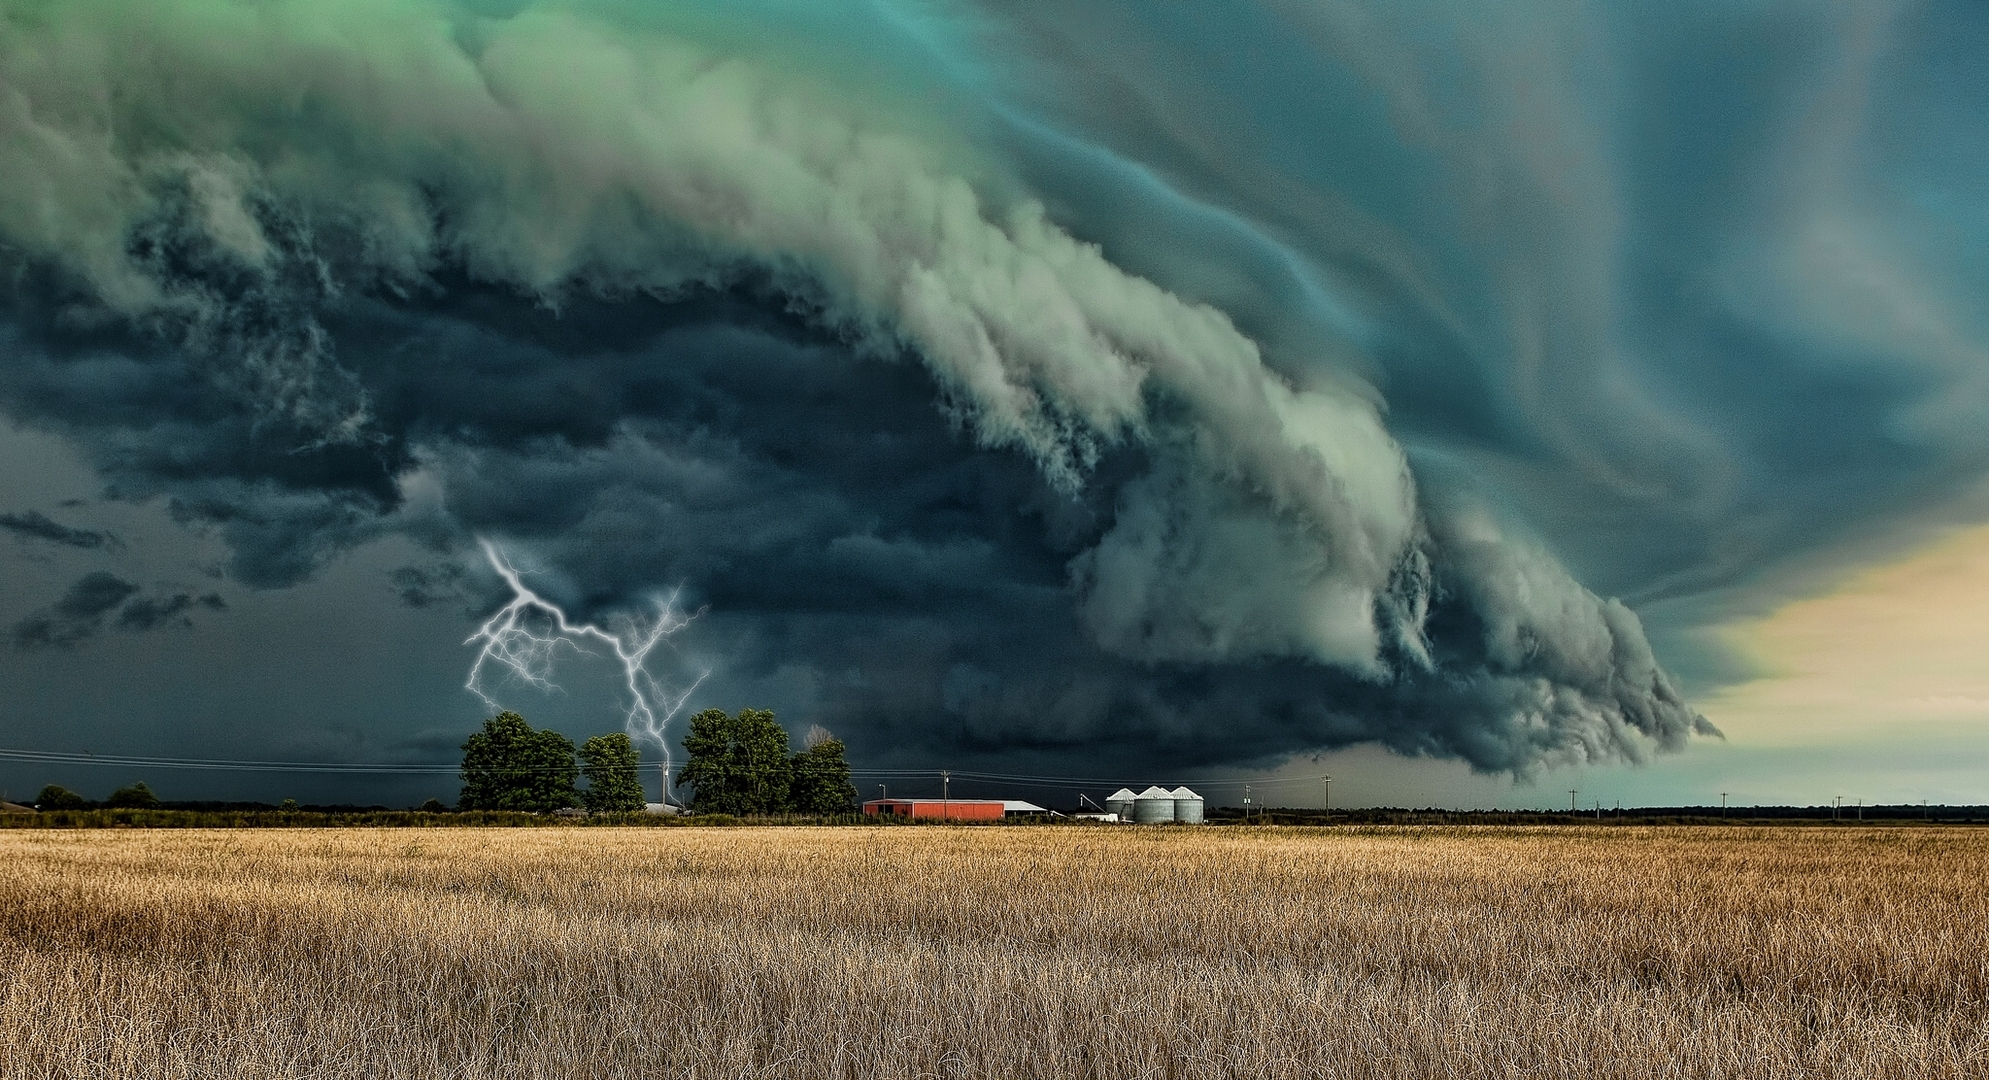 Landscape storm cloud July wallpapers and images   wallpapers 1989x1080